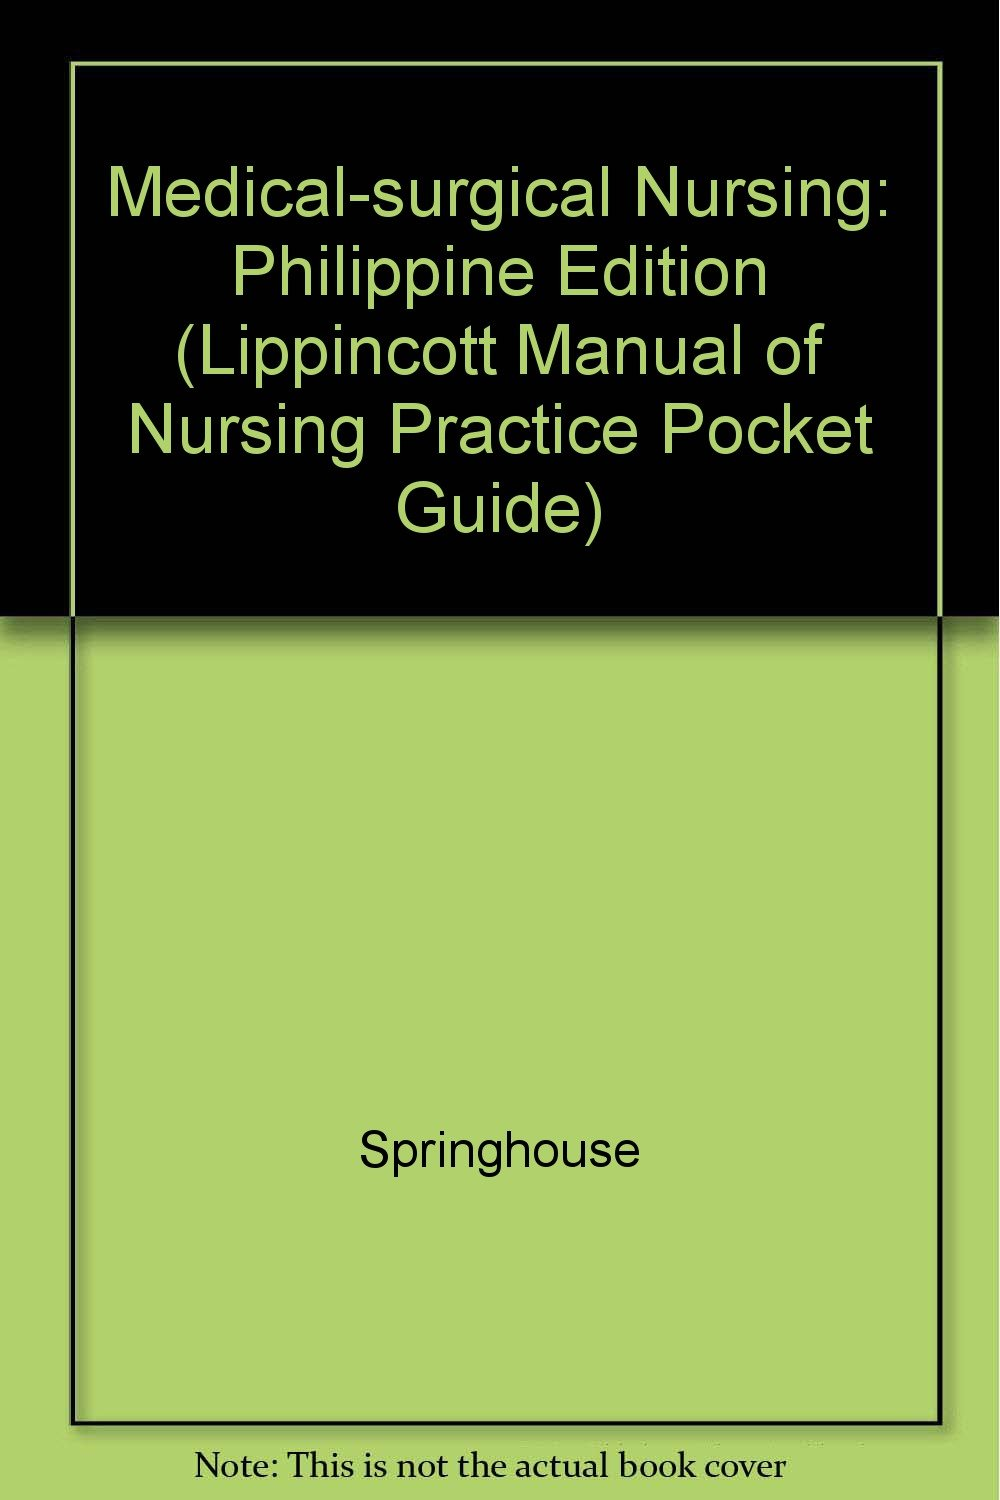 Medical-surgical Nursing: Philippine Edition (Lippincott Manual of Nursing  Practice Pocket Guide): Springhouse: 9780781781770: Amazon.com: Books